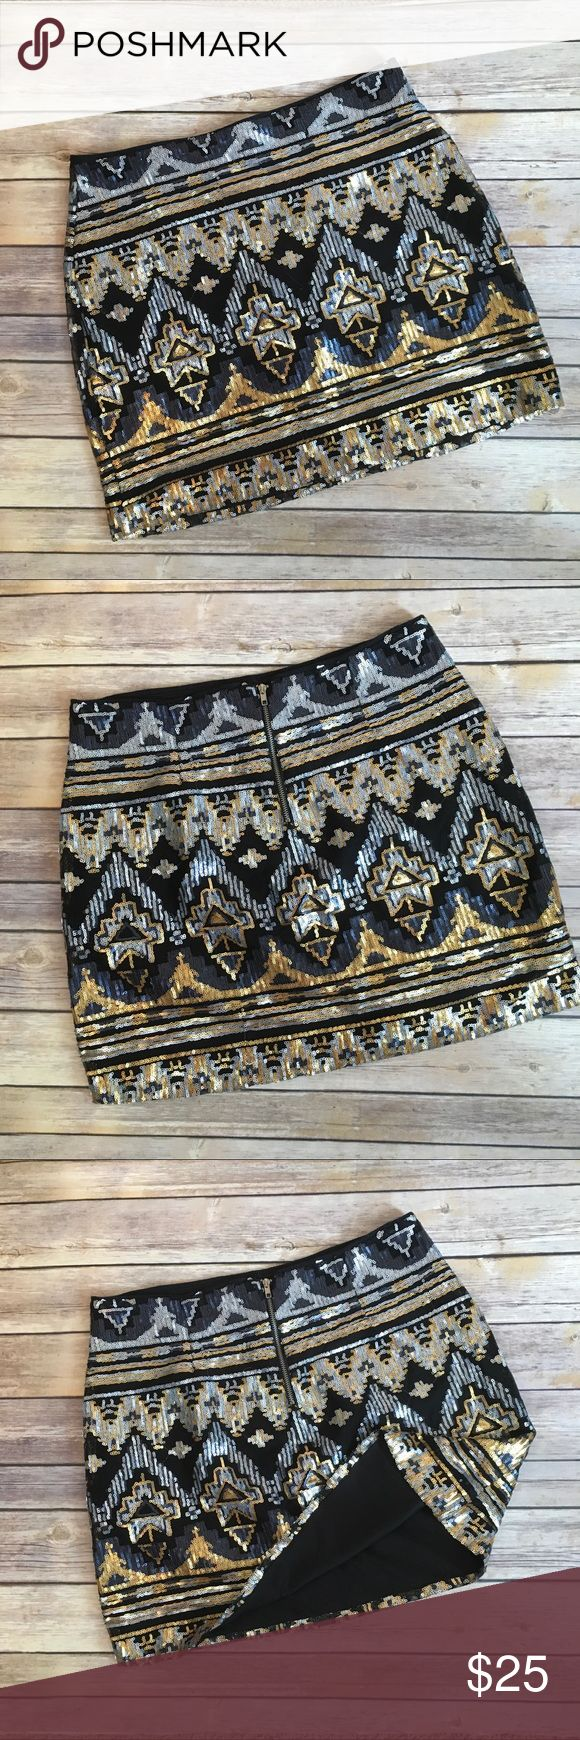 Forever 21 Aztec Sequin skirt Forever 21 Aztec Sequin skirt. Silver, gold and black. EUC. Size large. Runs small see photo with measurements. Forever 21 Skirts Mini